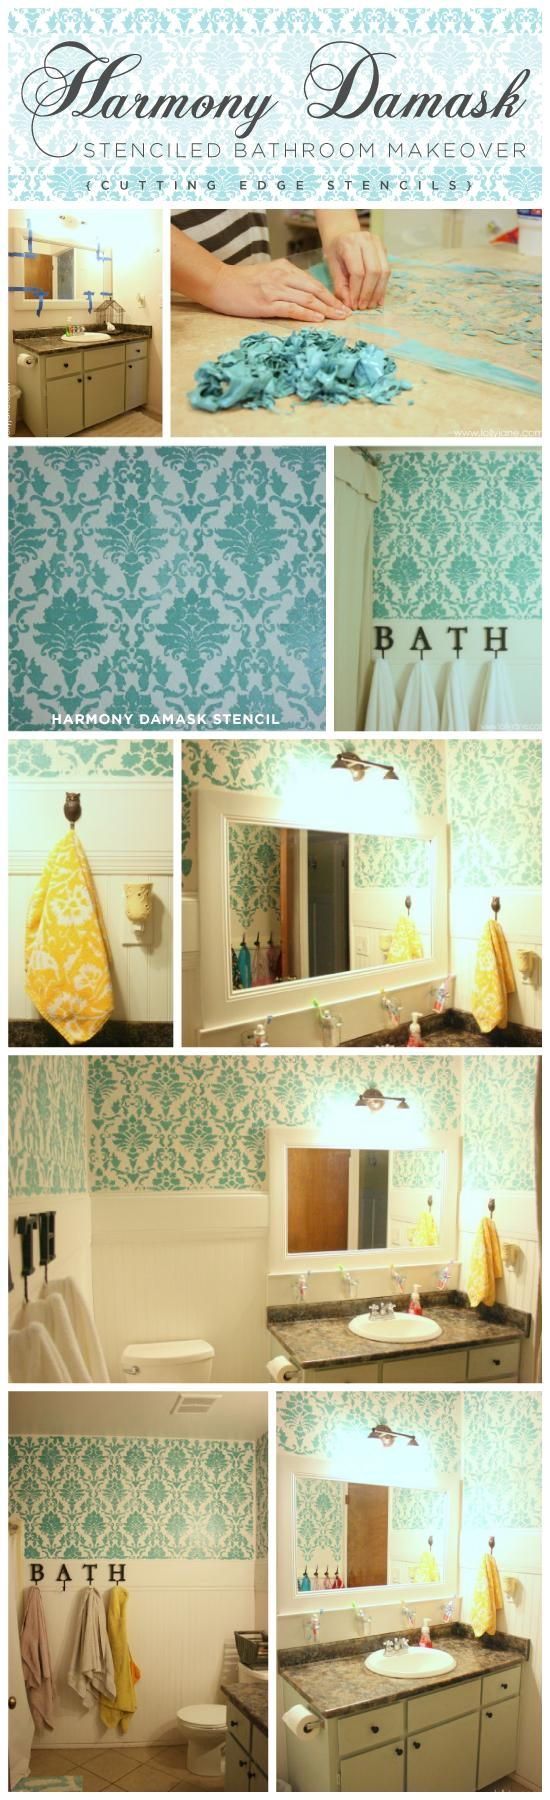 164 best DIY Stencil images on Pinterest | Fabric paint designs ...